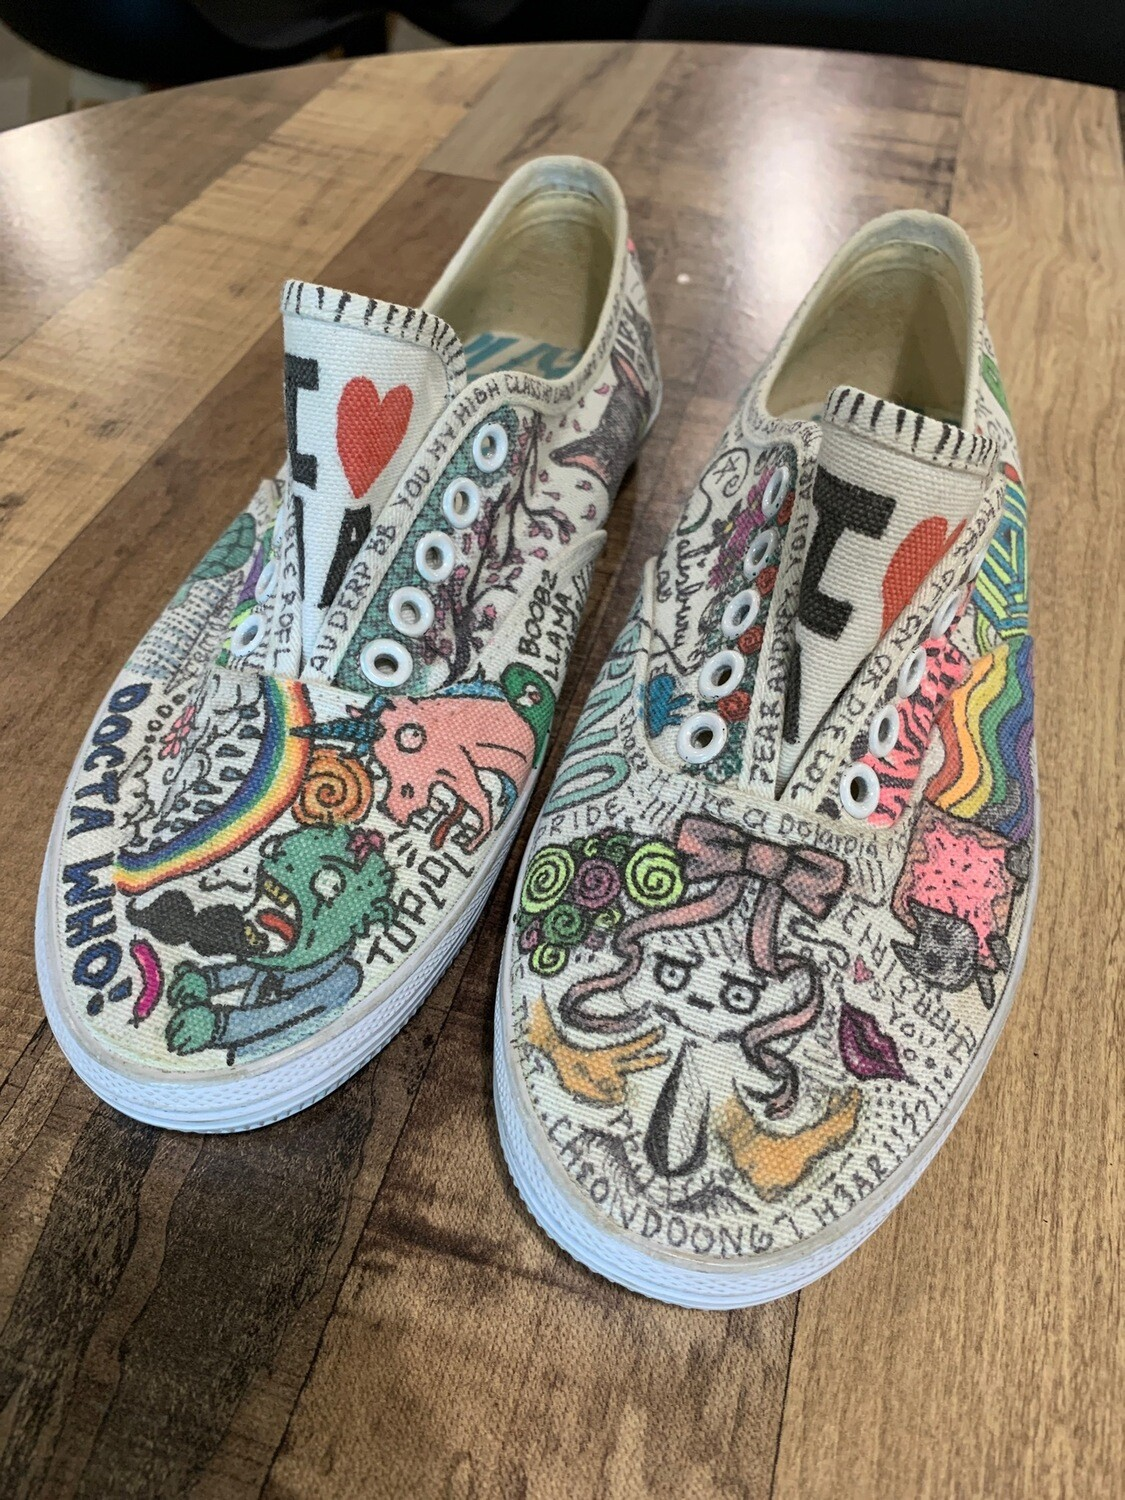 Street Art Hand-Inked Keds Sneakers Signed - Size US6